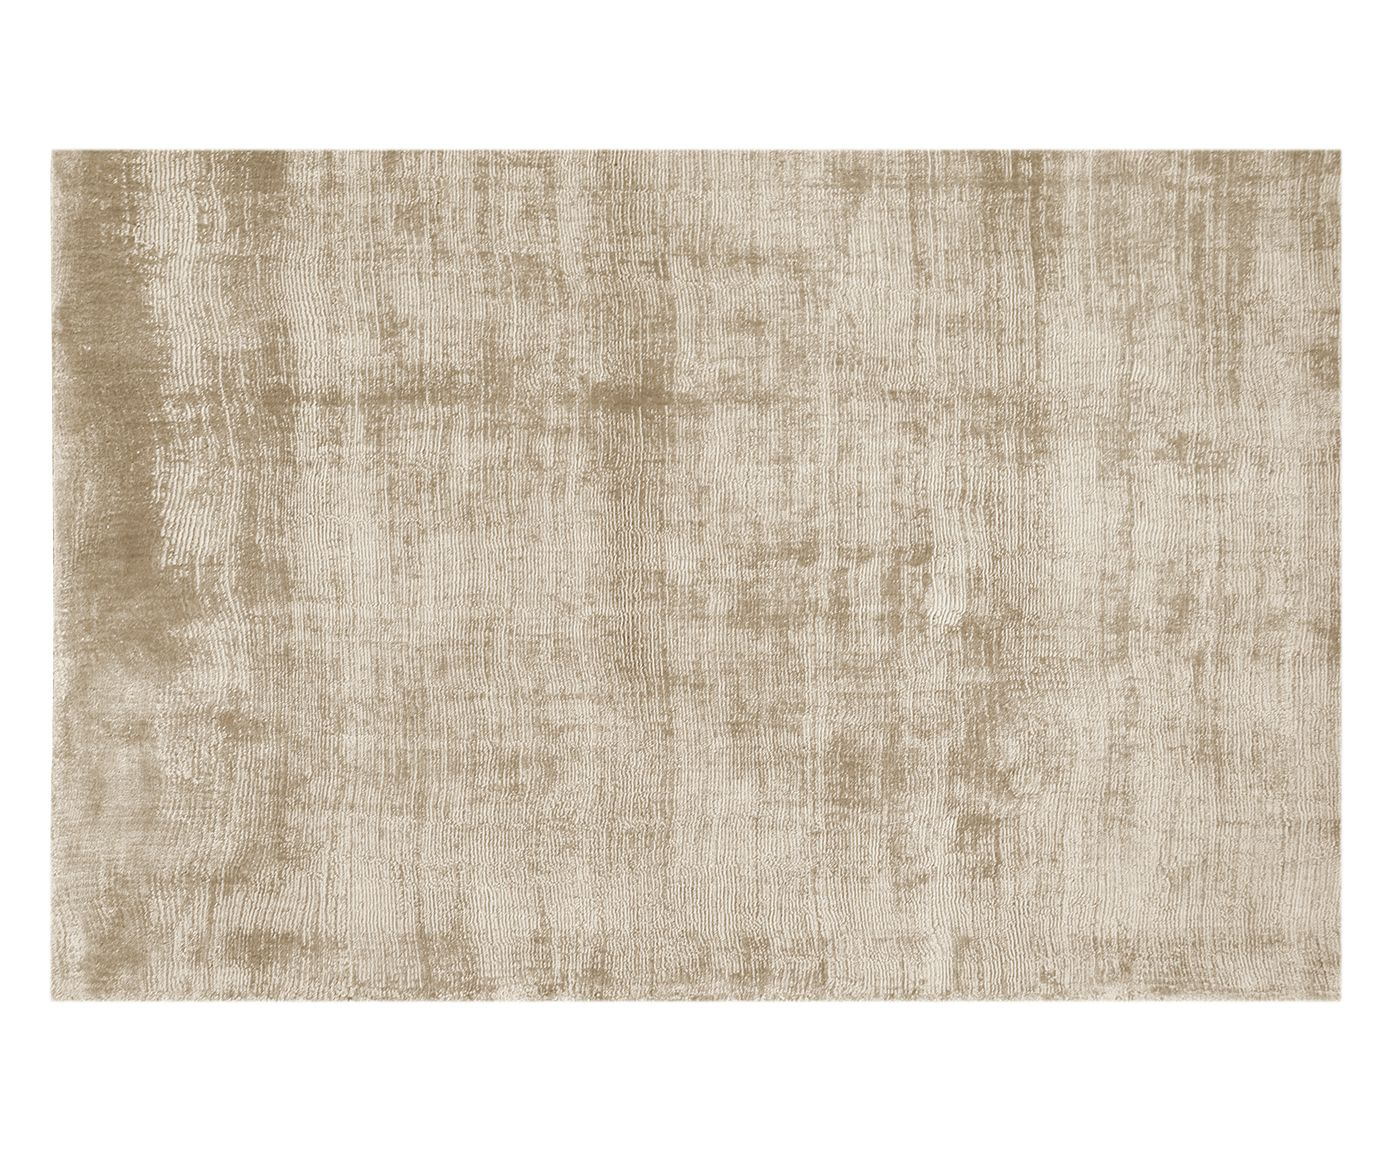 Tapete Indiano Seaburry Bege - 150X200cm | Westwing.com.br